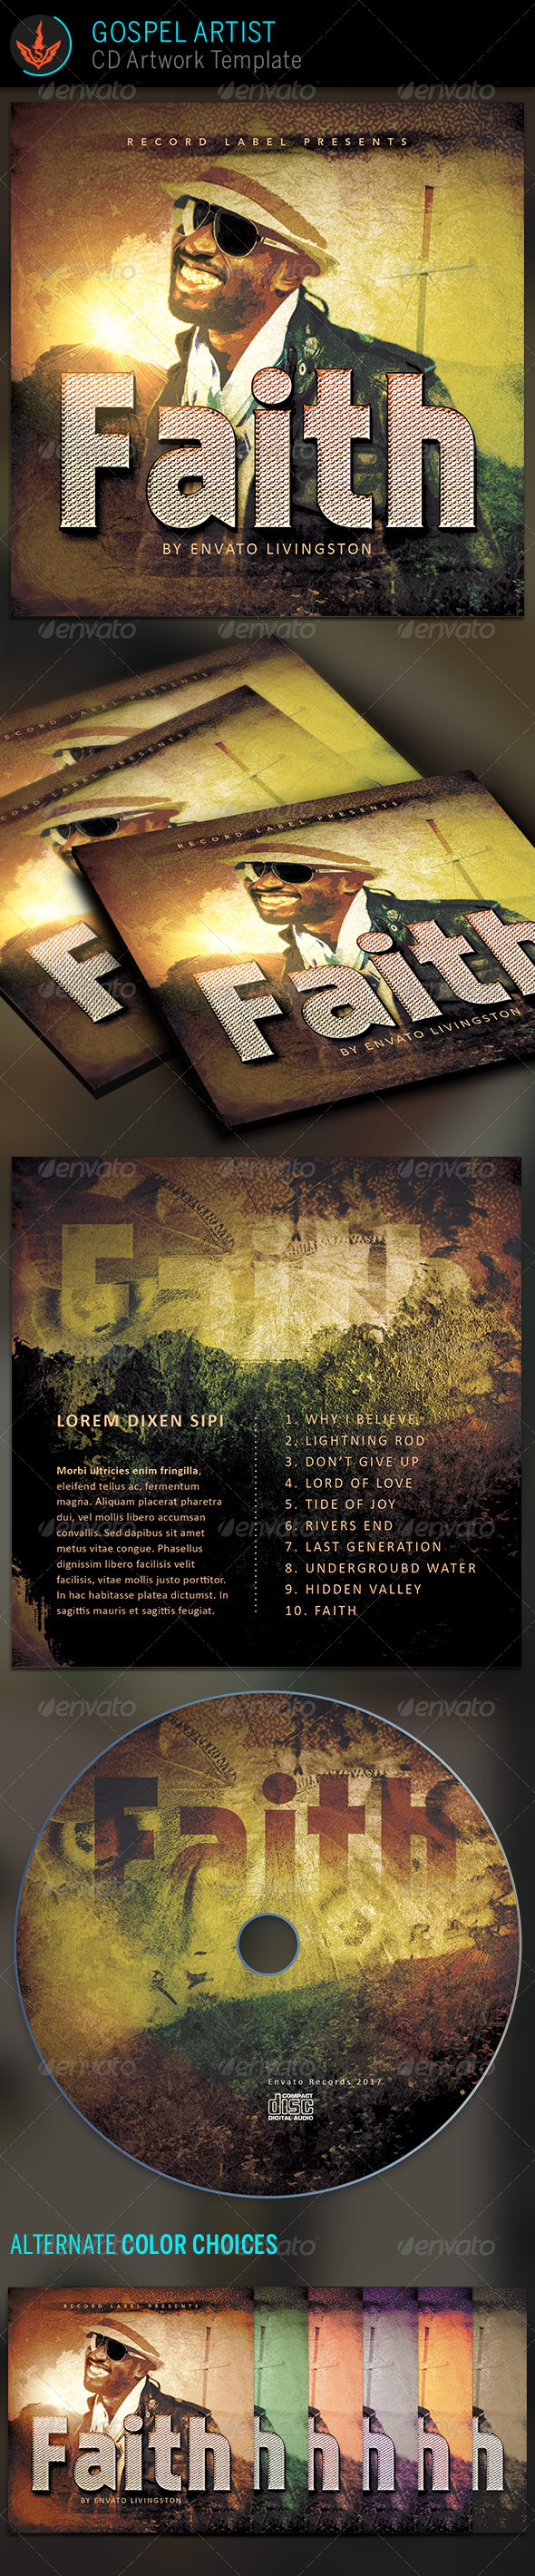 Gospel Artist CD Artwork Template - CD & DVD Artwork Print Templates